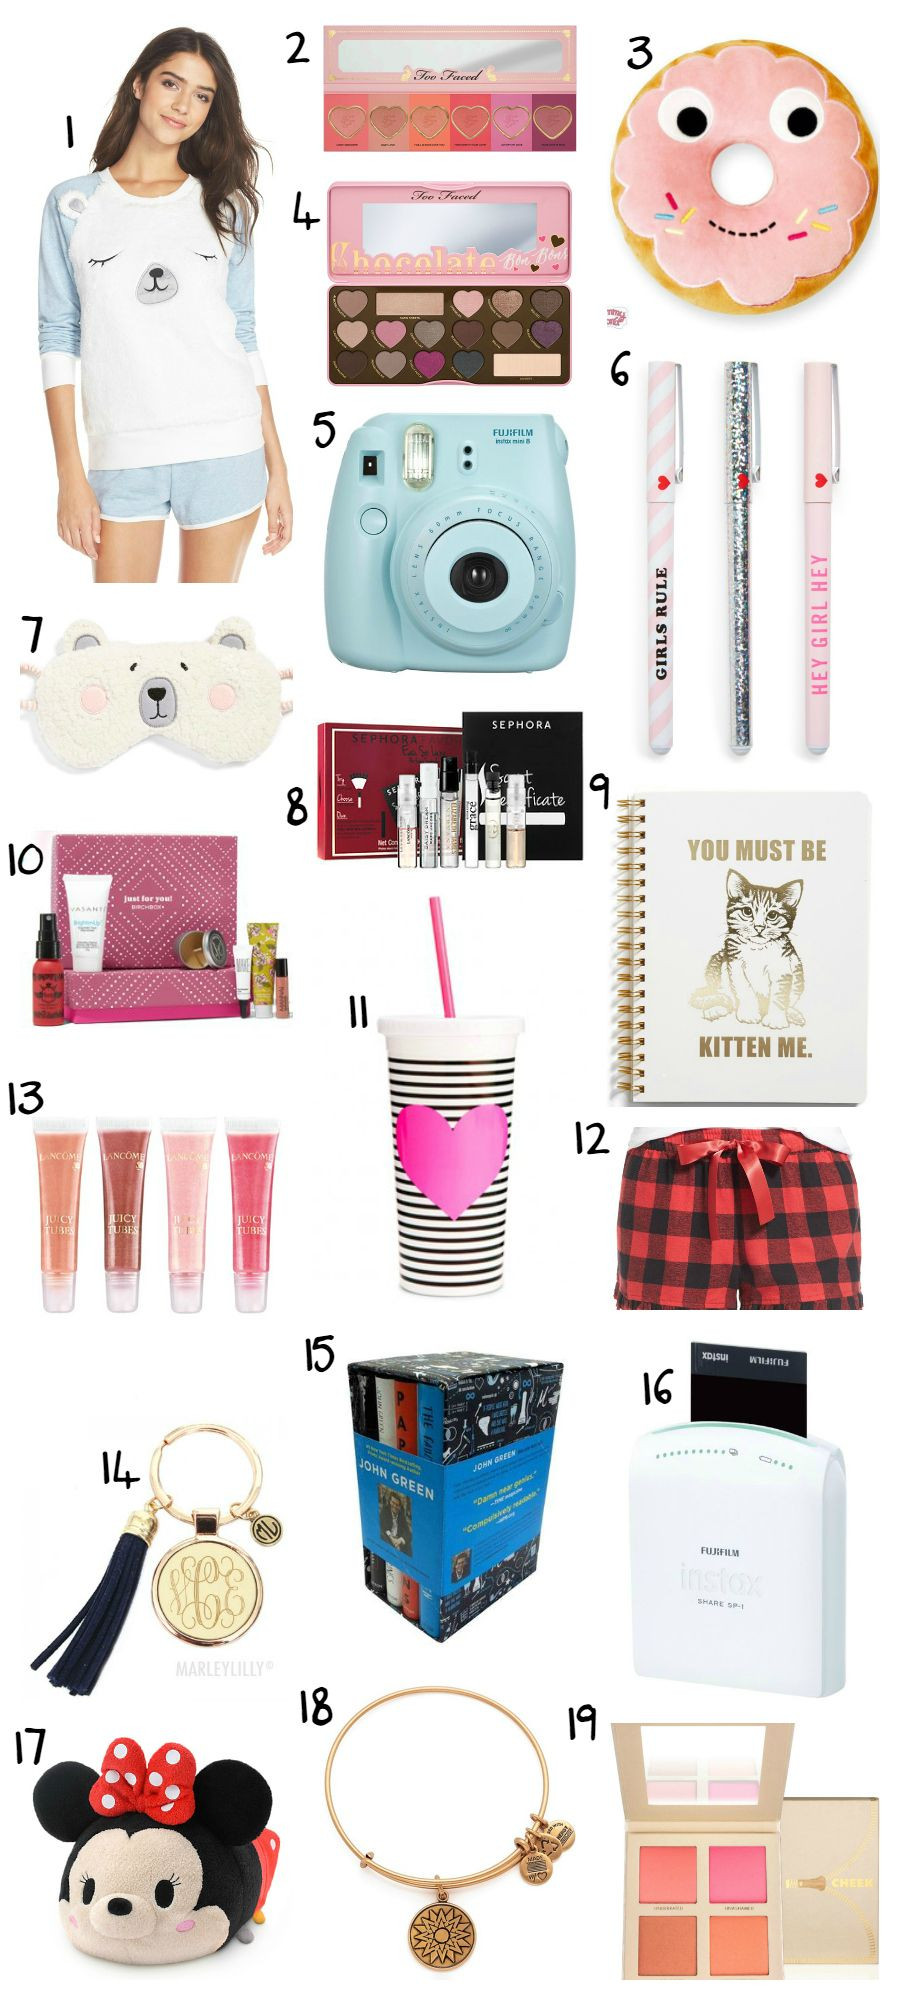 Best ideas about Gift Ideas For Teen Girls . Save or Pin The Best Christmas Gift Ideas for Teens Now.